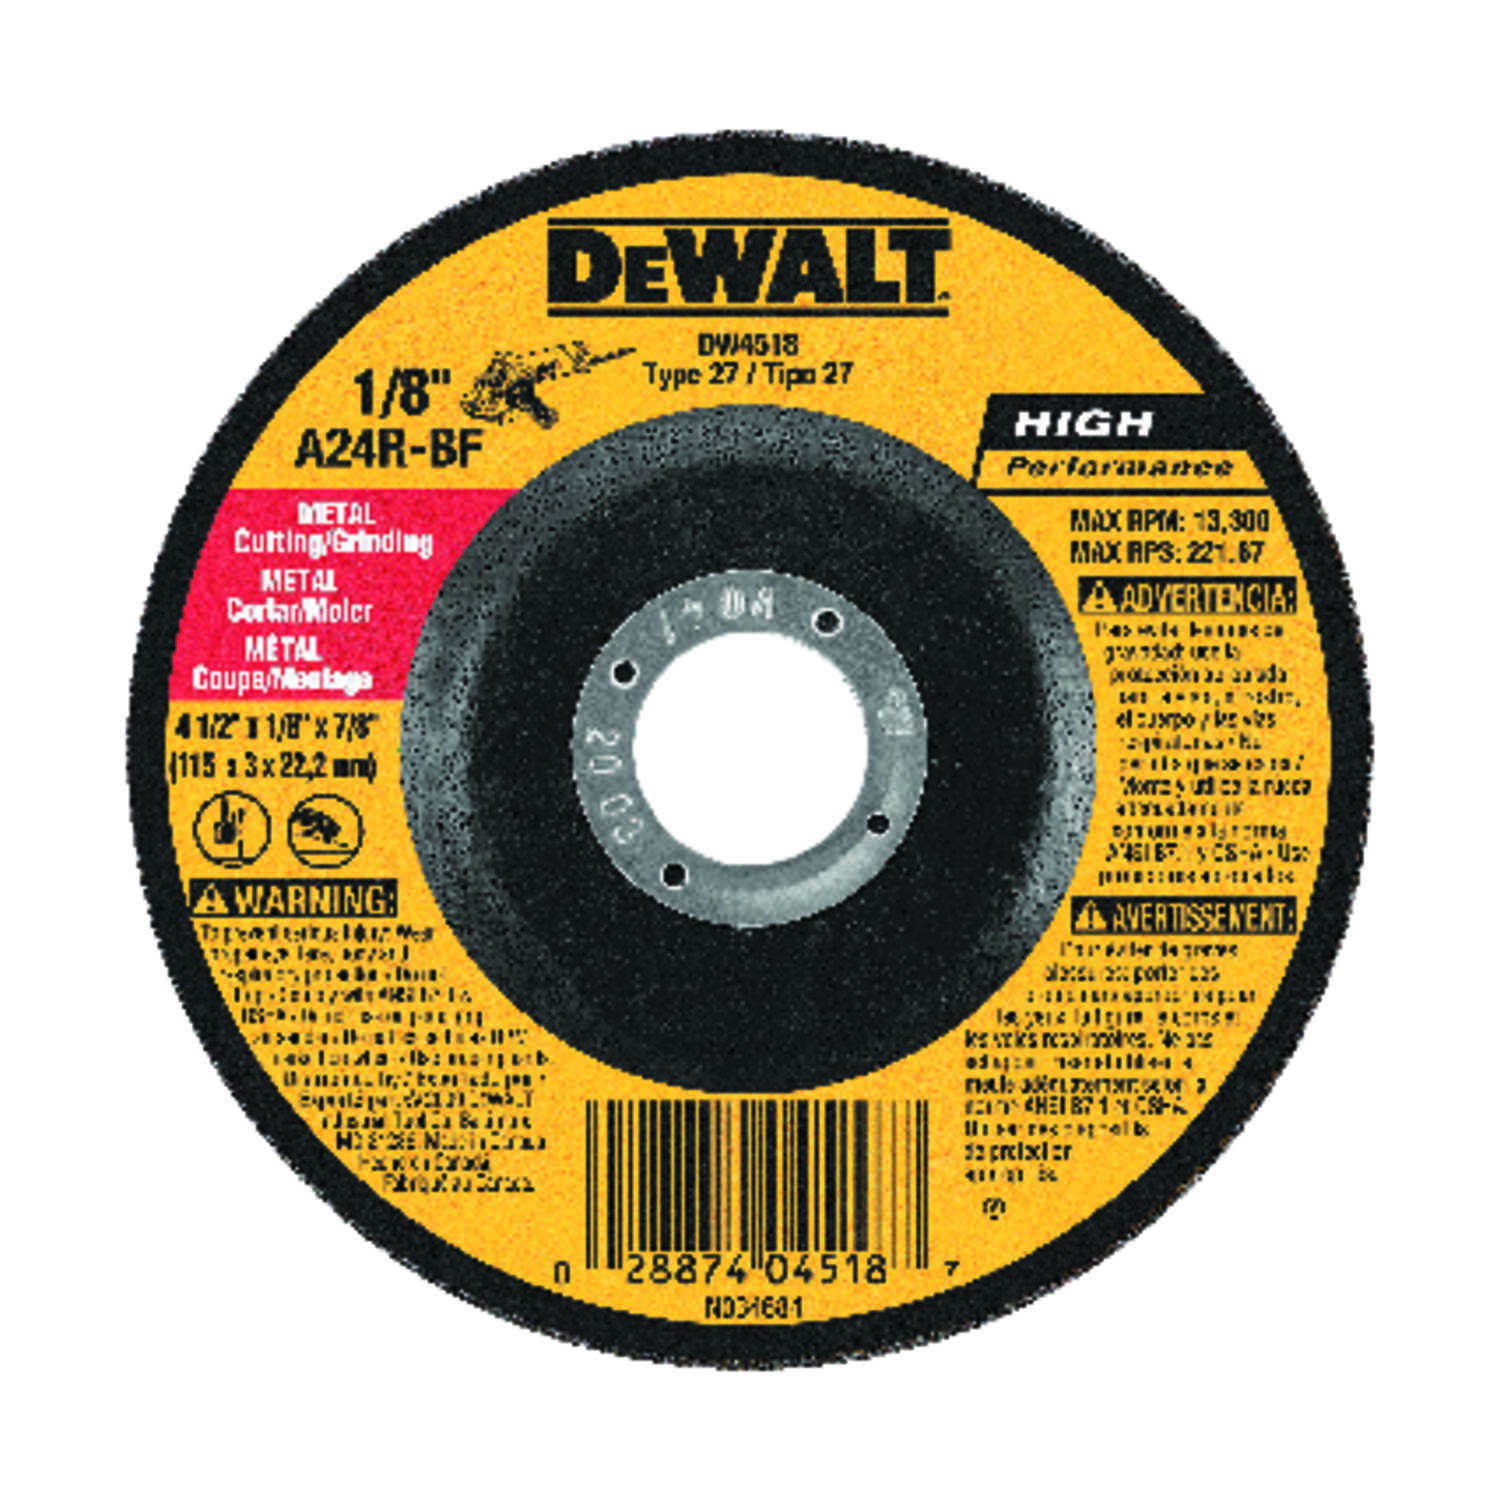 DeWalt  High Performance  4-1/2 in. 7/8 in. in.  Aluminum Oxide  Cutting/Grinding Wheel  1 pc.